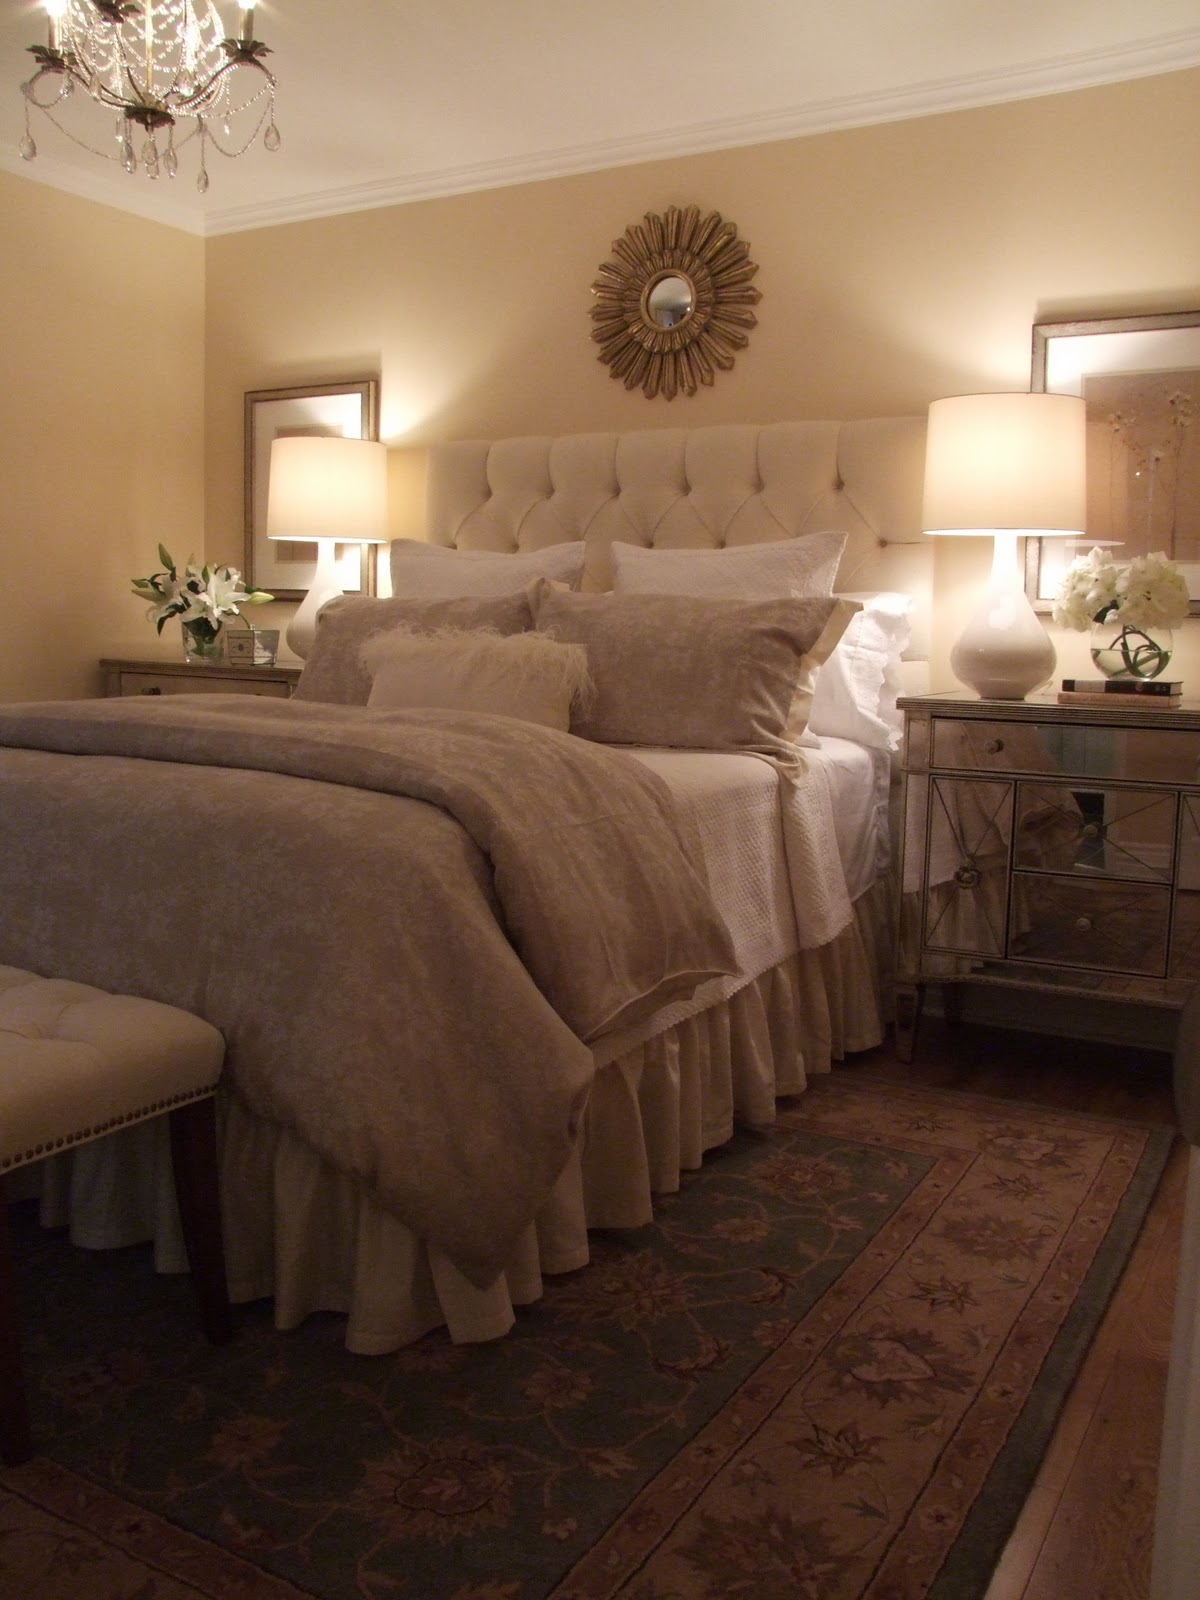 Cream Bedroom Decor: CREED: Master Retreat: 70's Sidesplit